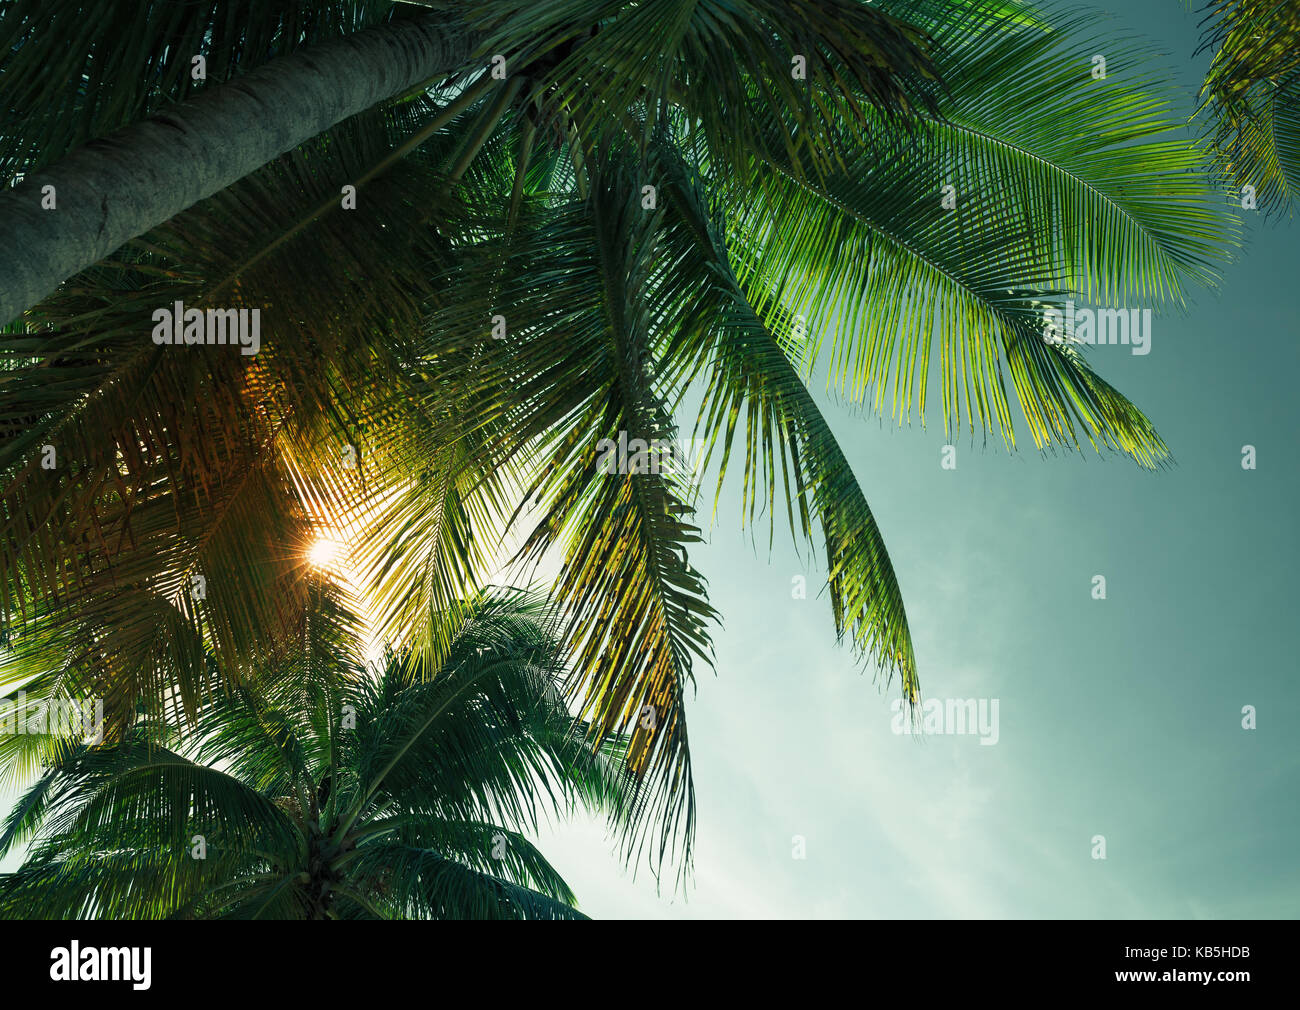 Palm trees leaves silhouette under tropical evening sky background ...